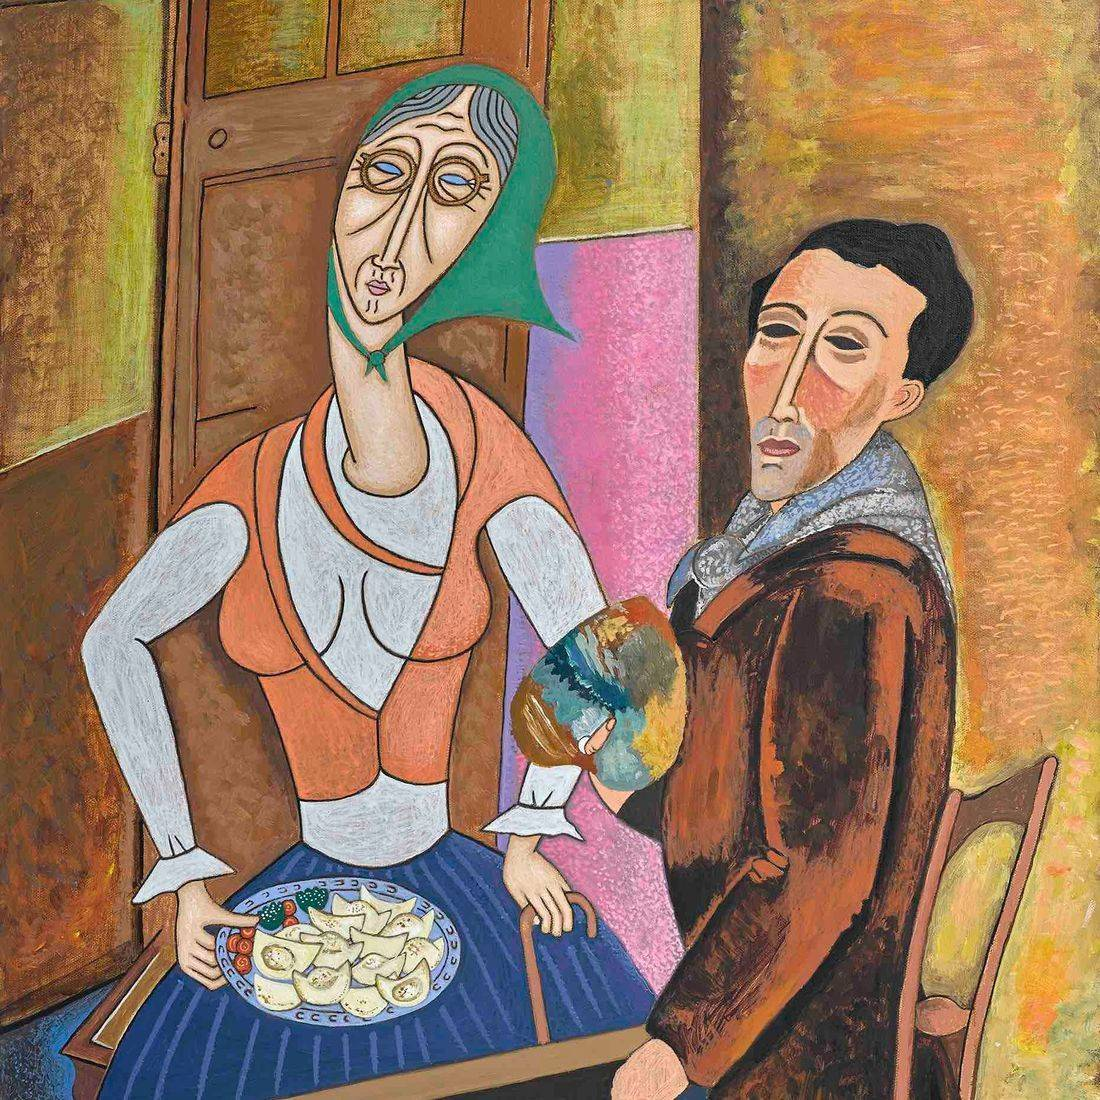 Modigliani, Grandmother, Pierogies, Polish Culture, Homage, Famous Artists, Parody, Humor